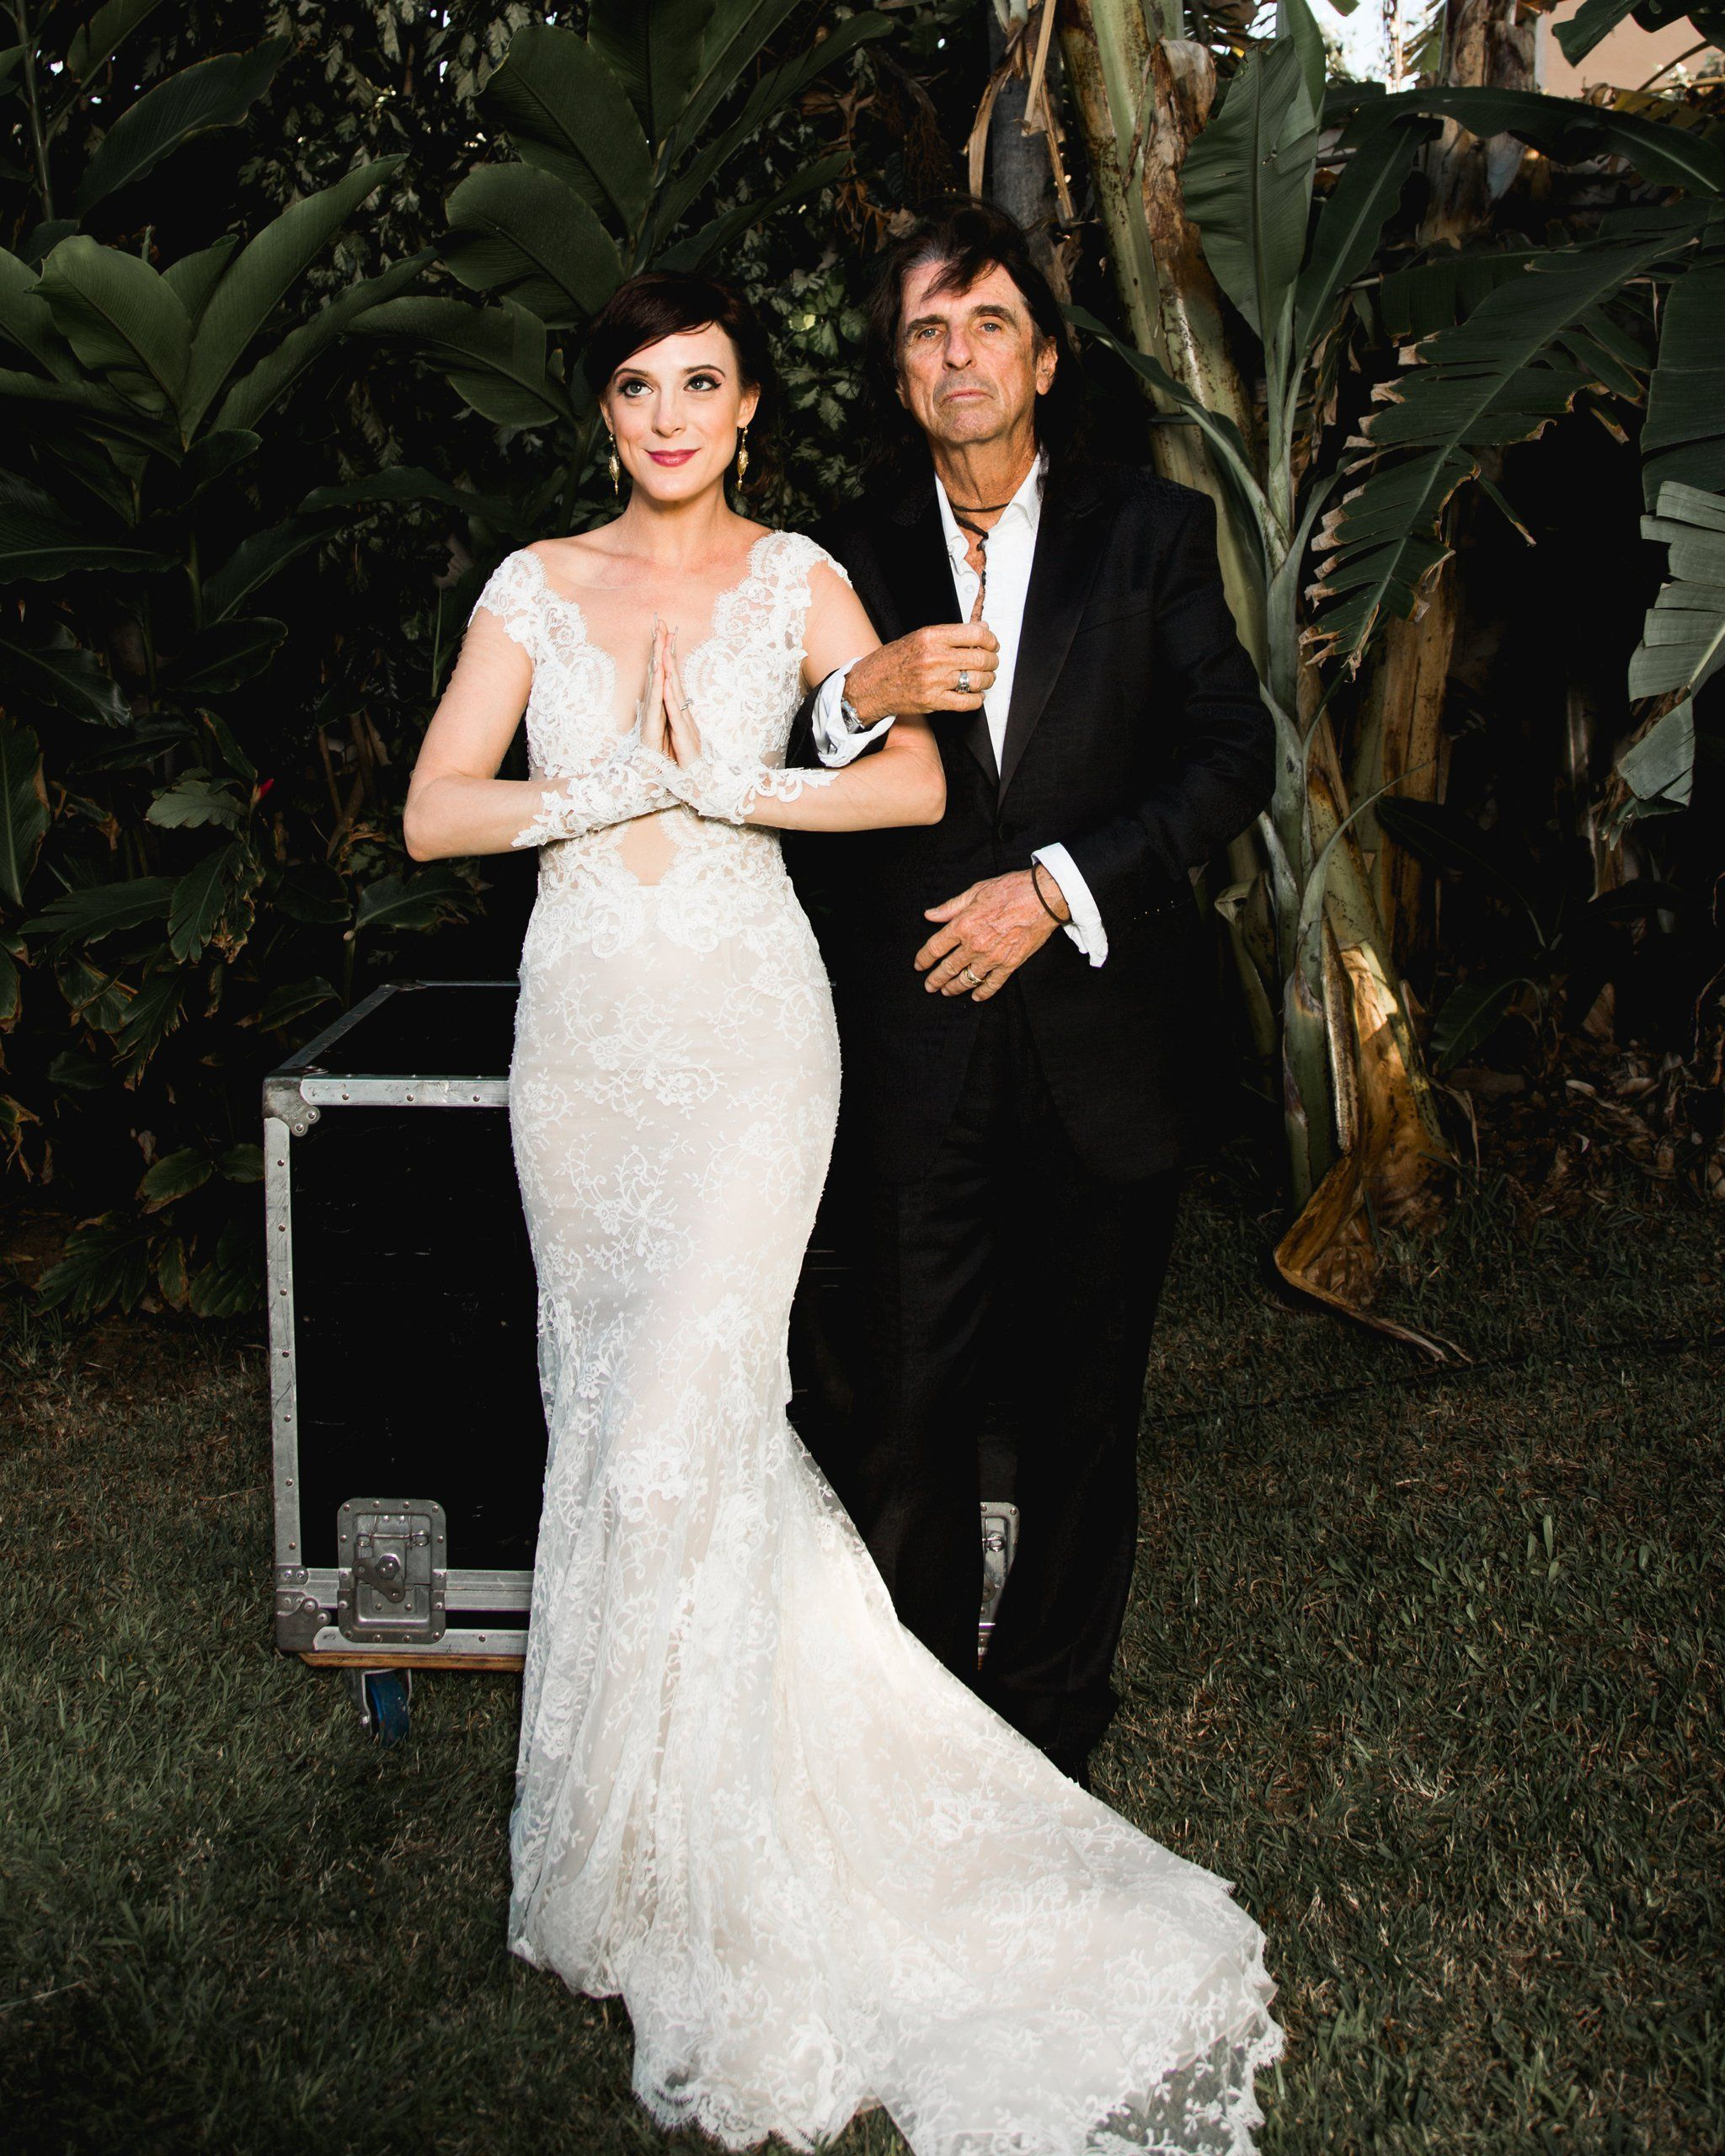 Alice Coopers Daughter Is Rock Royalty But Her Wedding Is Pure Elegance